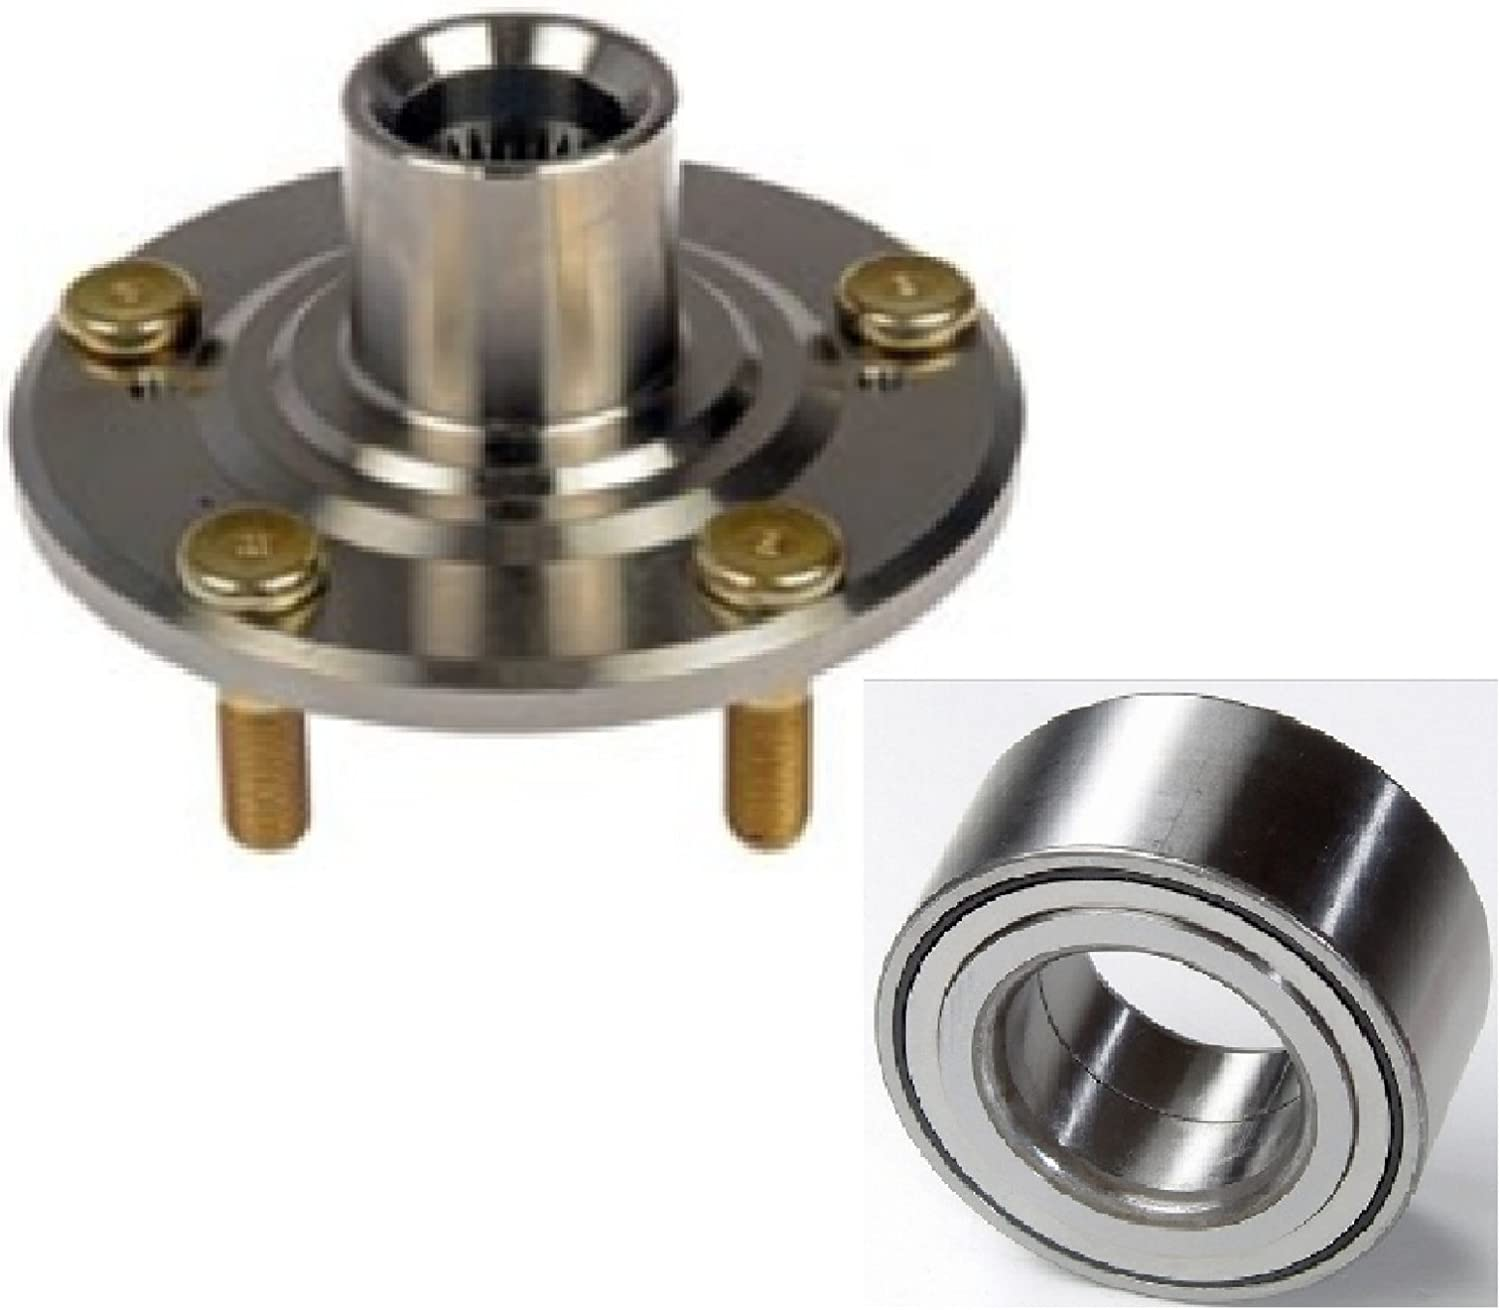 Type S 8USAUTO Single Front Left or Right Wheel Hub and Bearing fit 2002 2003 2004 2005 2006 Acura RSX